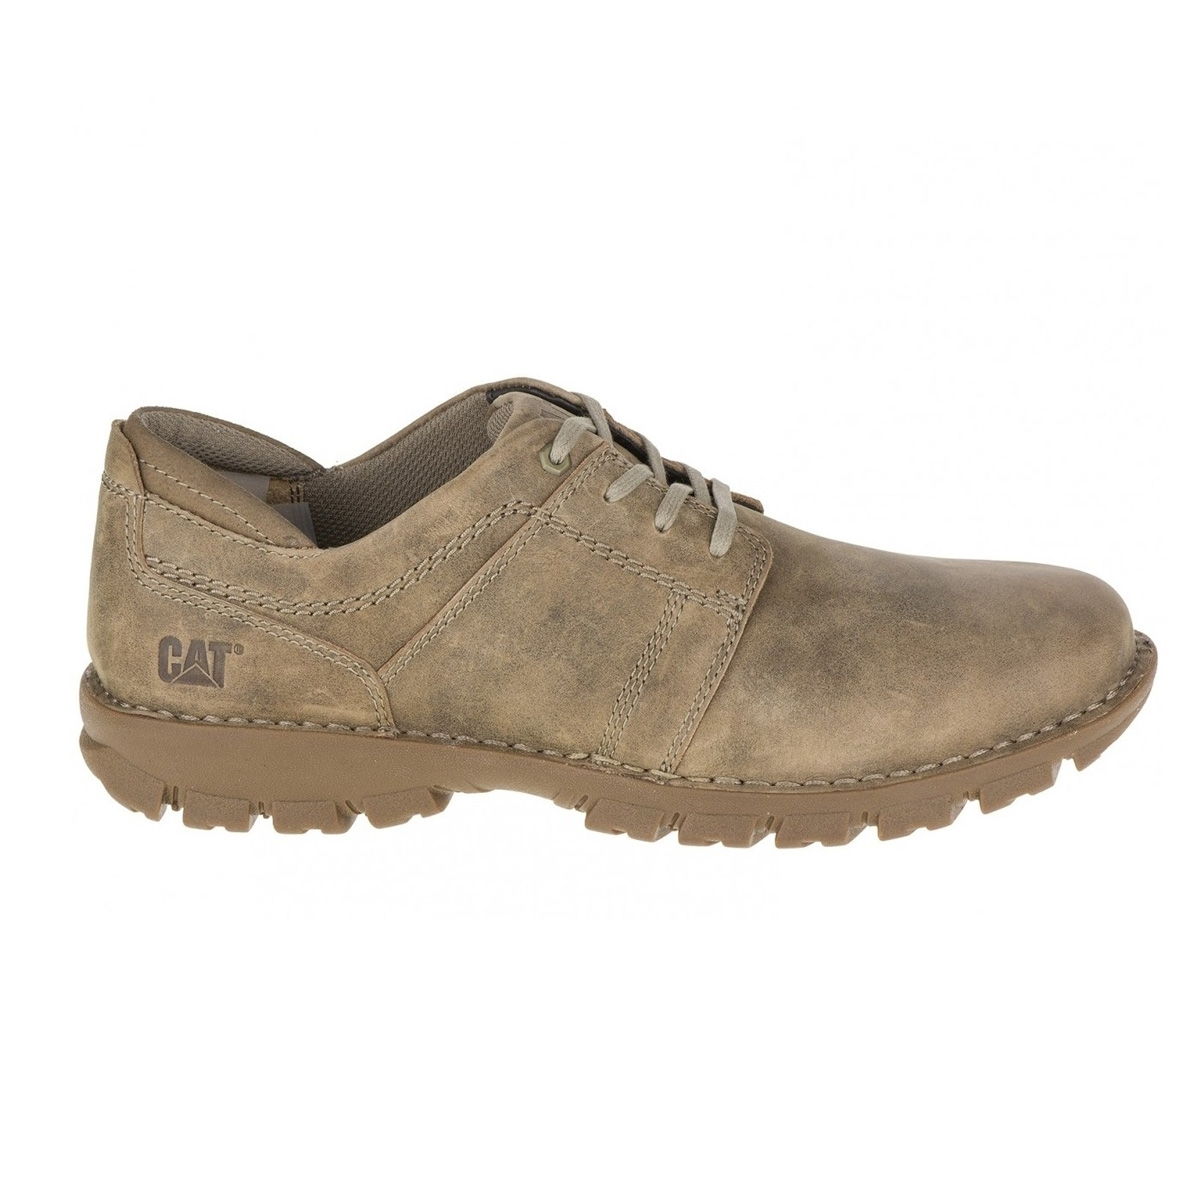 4e8ee92c3b CAT Caden Shoes (Men's) - Beaned | Uttings.co.uk